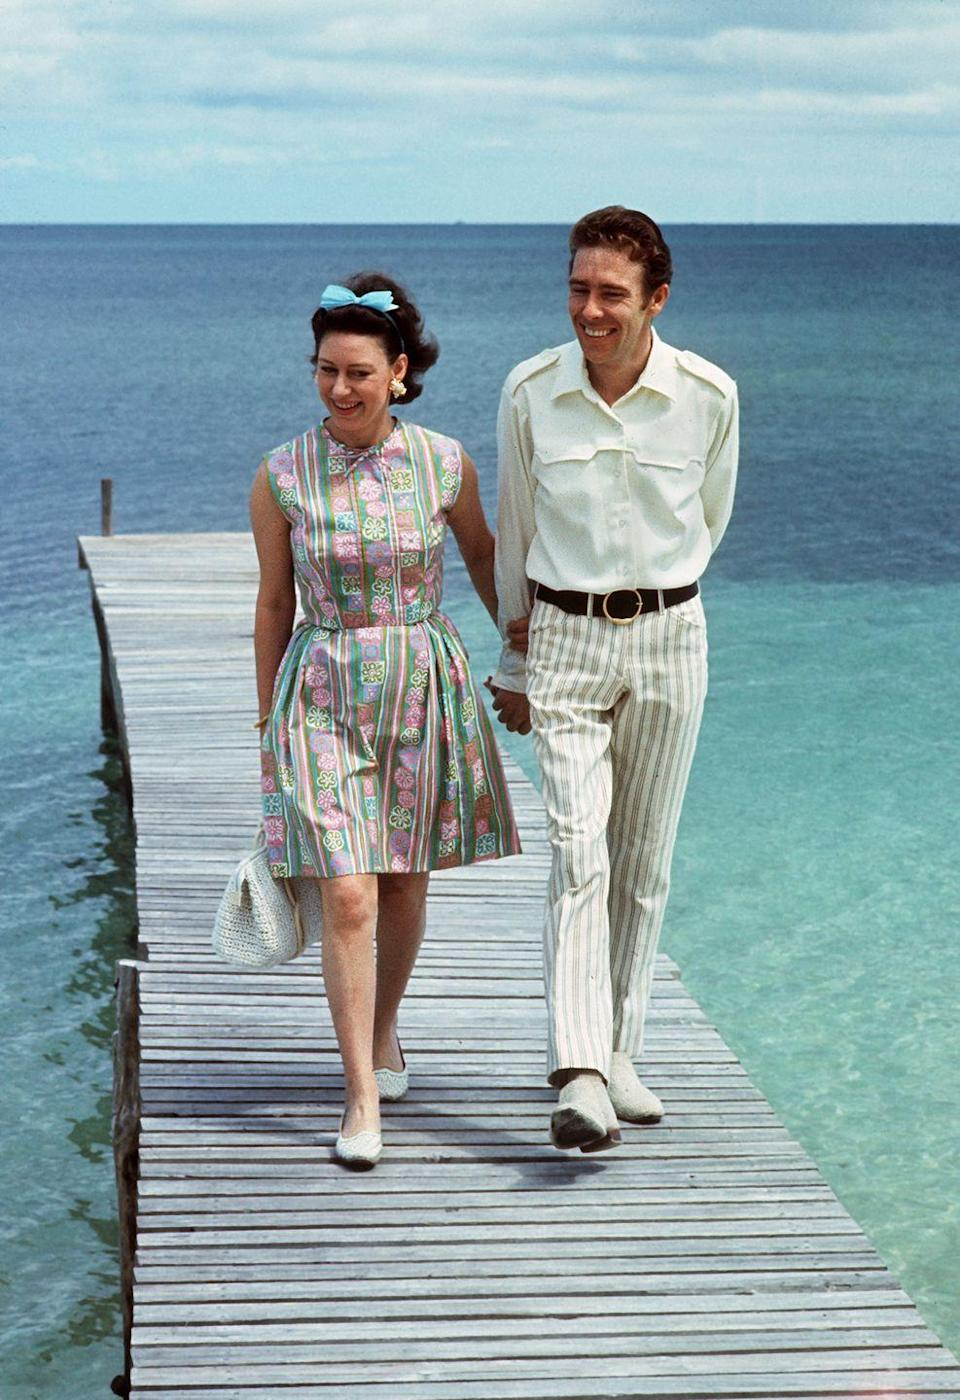 """<p>Princess Margaret, Queen Elizabeth's younger sister, and <a href=""""https://www.townandcountrymag.com/society/news/a9255/princess-margaret-lord-snowdon-relationship/"""" rel=""""nofollow noopener"""" target=""""_blank"""" data-ylk=""""slk:her then-husband, the Earl of Snowdon"""" class=""""link rapid-noclick-resp"""">her then-husband, the Earl of Snowdon</a>, both wore stripes on a pontoon in the Bahamas. The Princess's pastel dress included stripes in its design and the Earl chose some funky striped slacks. </p>"""